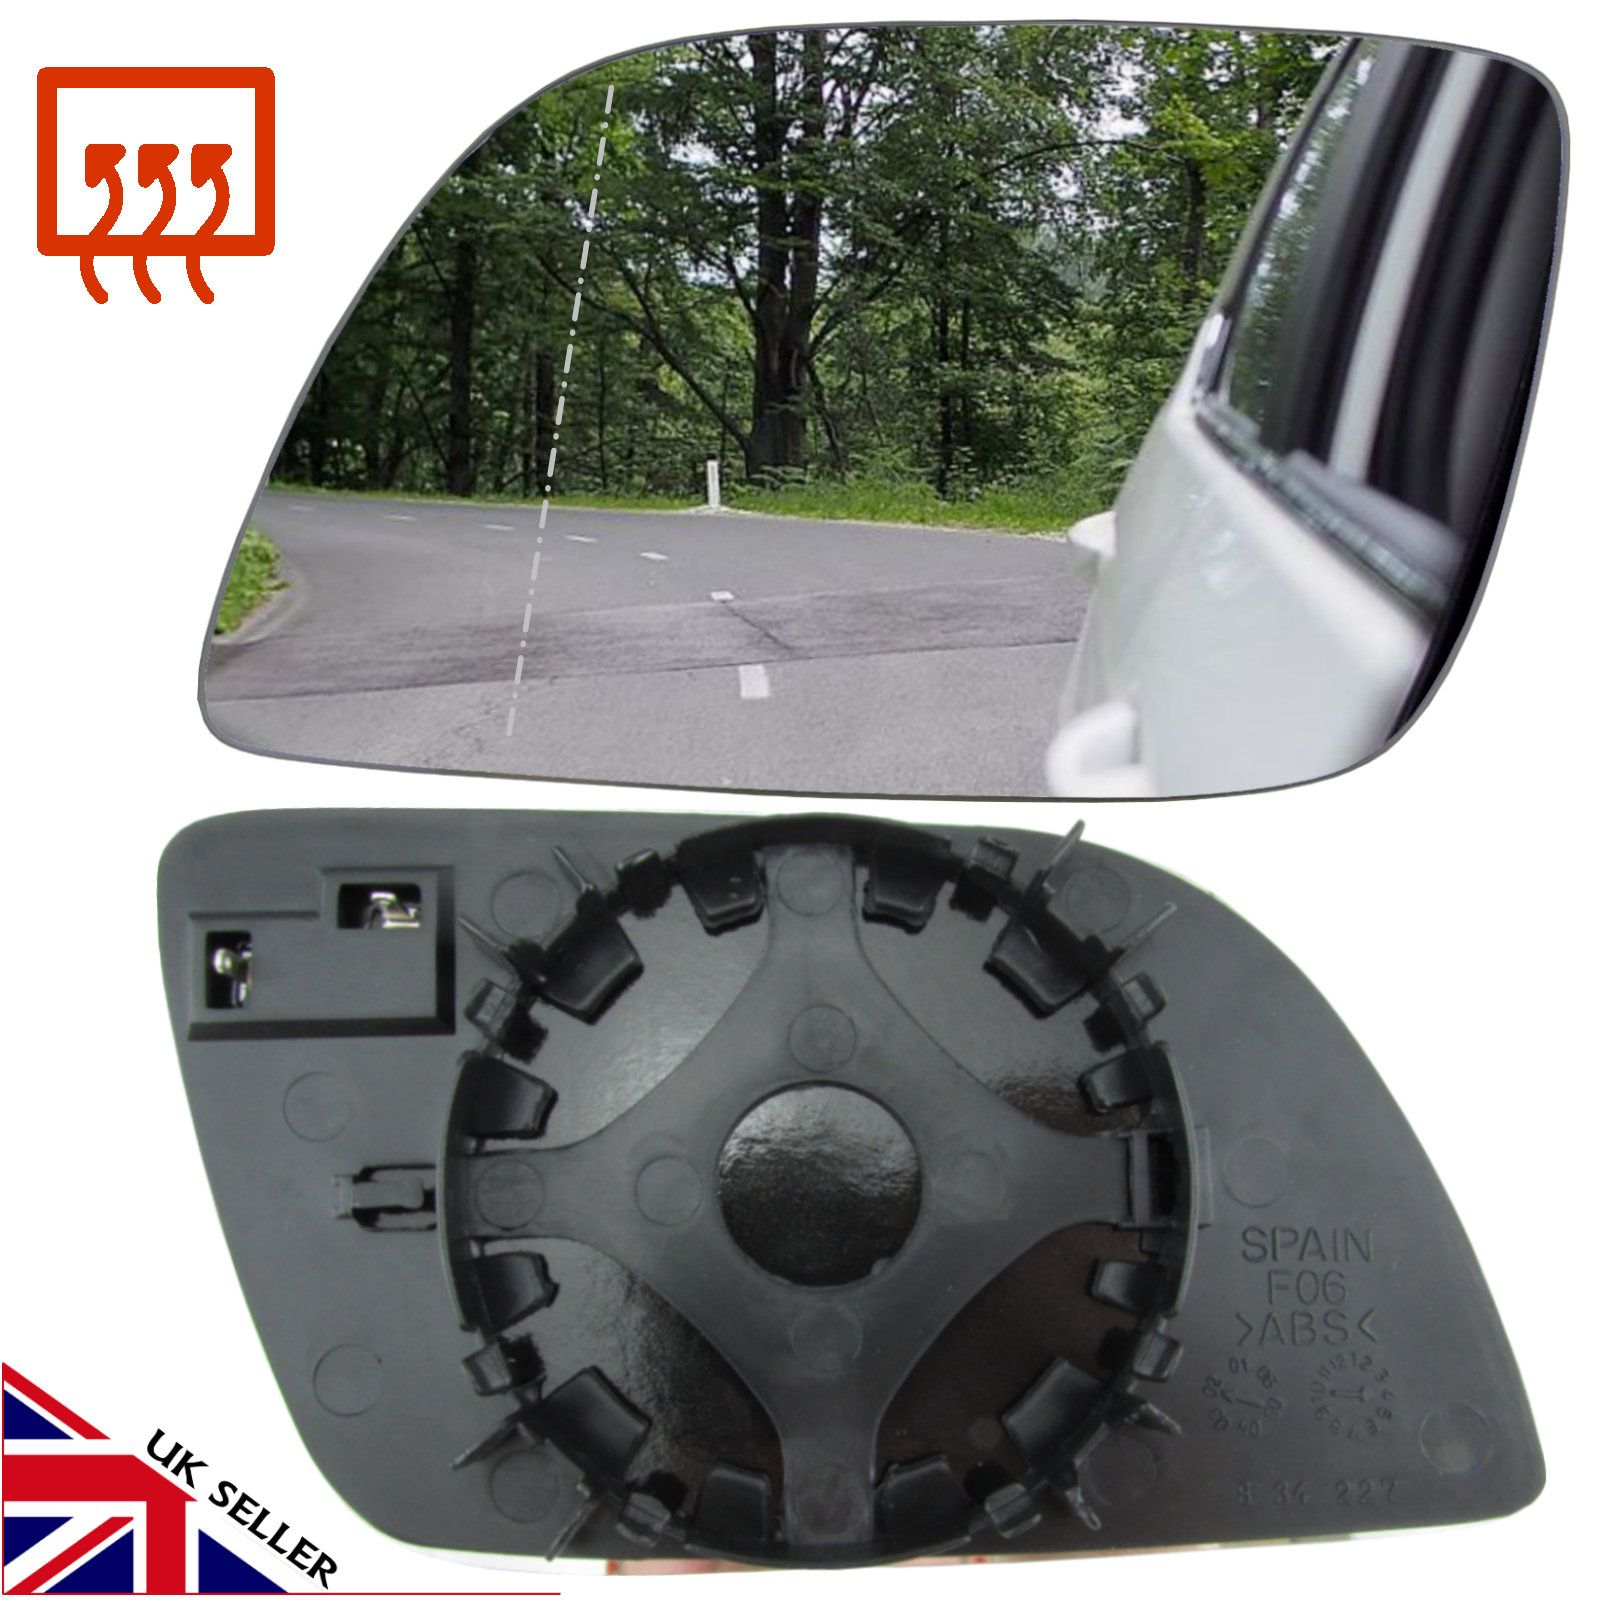 Pin By Cezary Sobieszuk On Auto Parts Solutions Wing Mirrors Glass Fit Glass Mirror